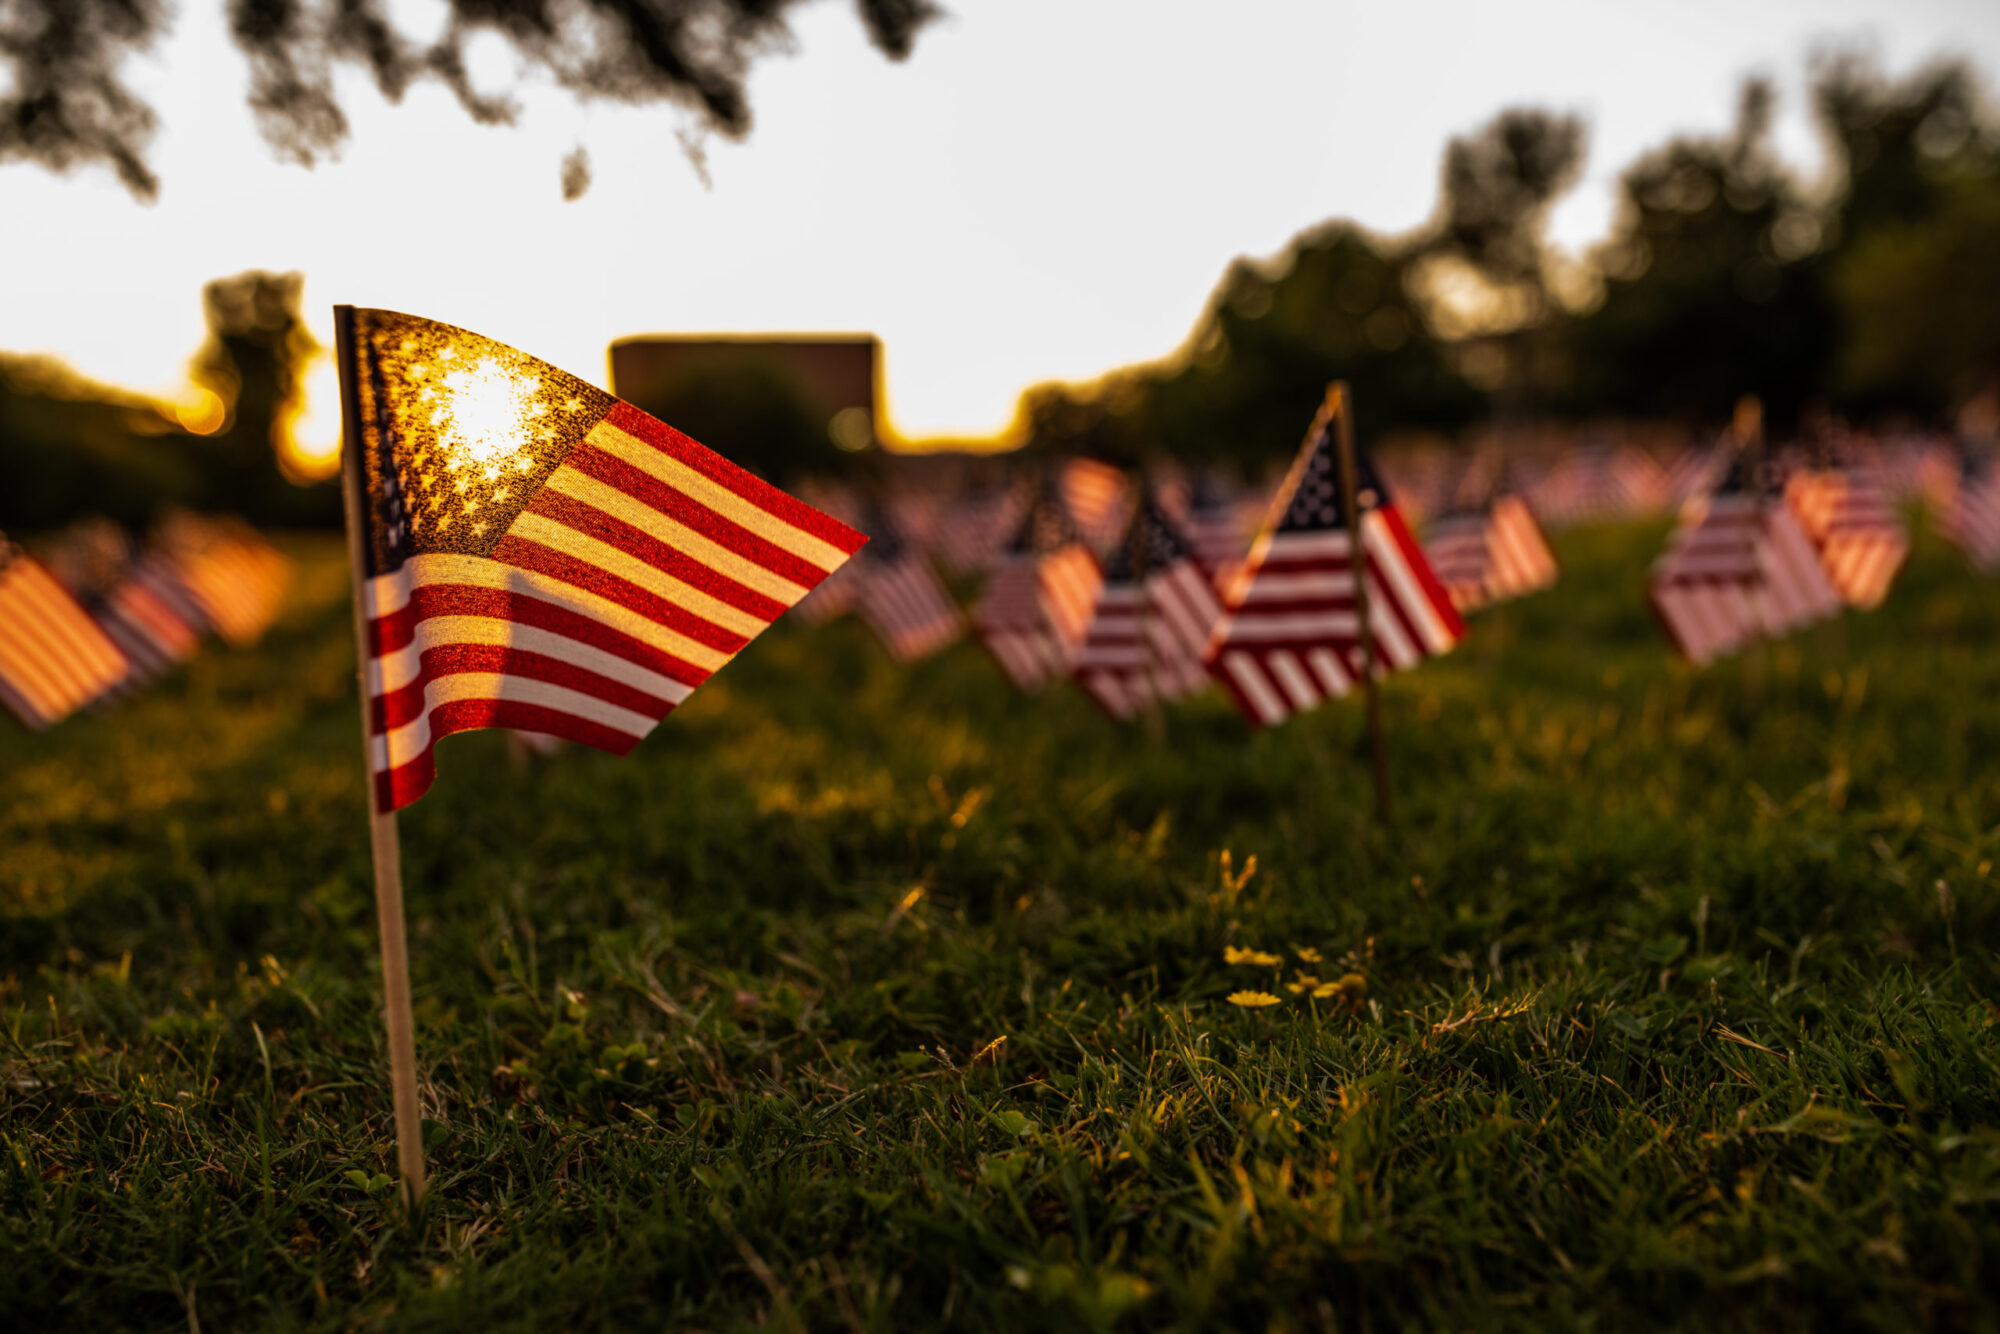 M20005-9-11-Memorial-Flags-1204-scaled-1